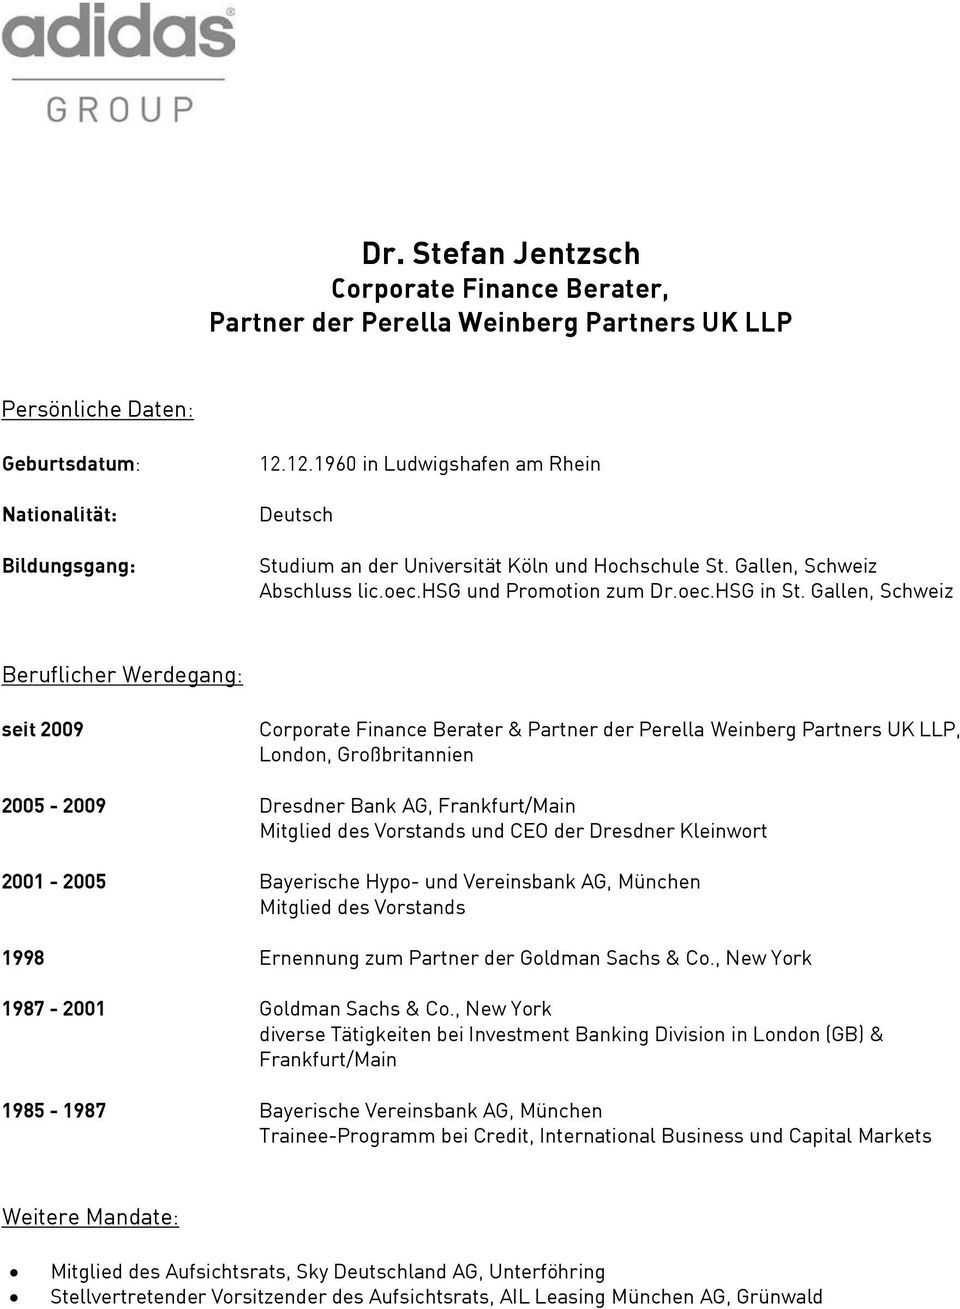 Gallen, Schweiz seit 2009 Corporate Finance Berater & Partner der Perella Weinberg Partners UK LLP, London, Großbritannien 2005-2009 Dresdner Bank AG, Frankfurt/Main Mitglied des Vorstands und CEO